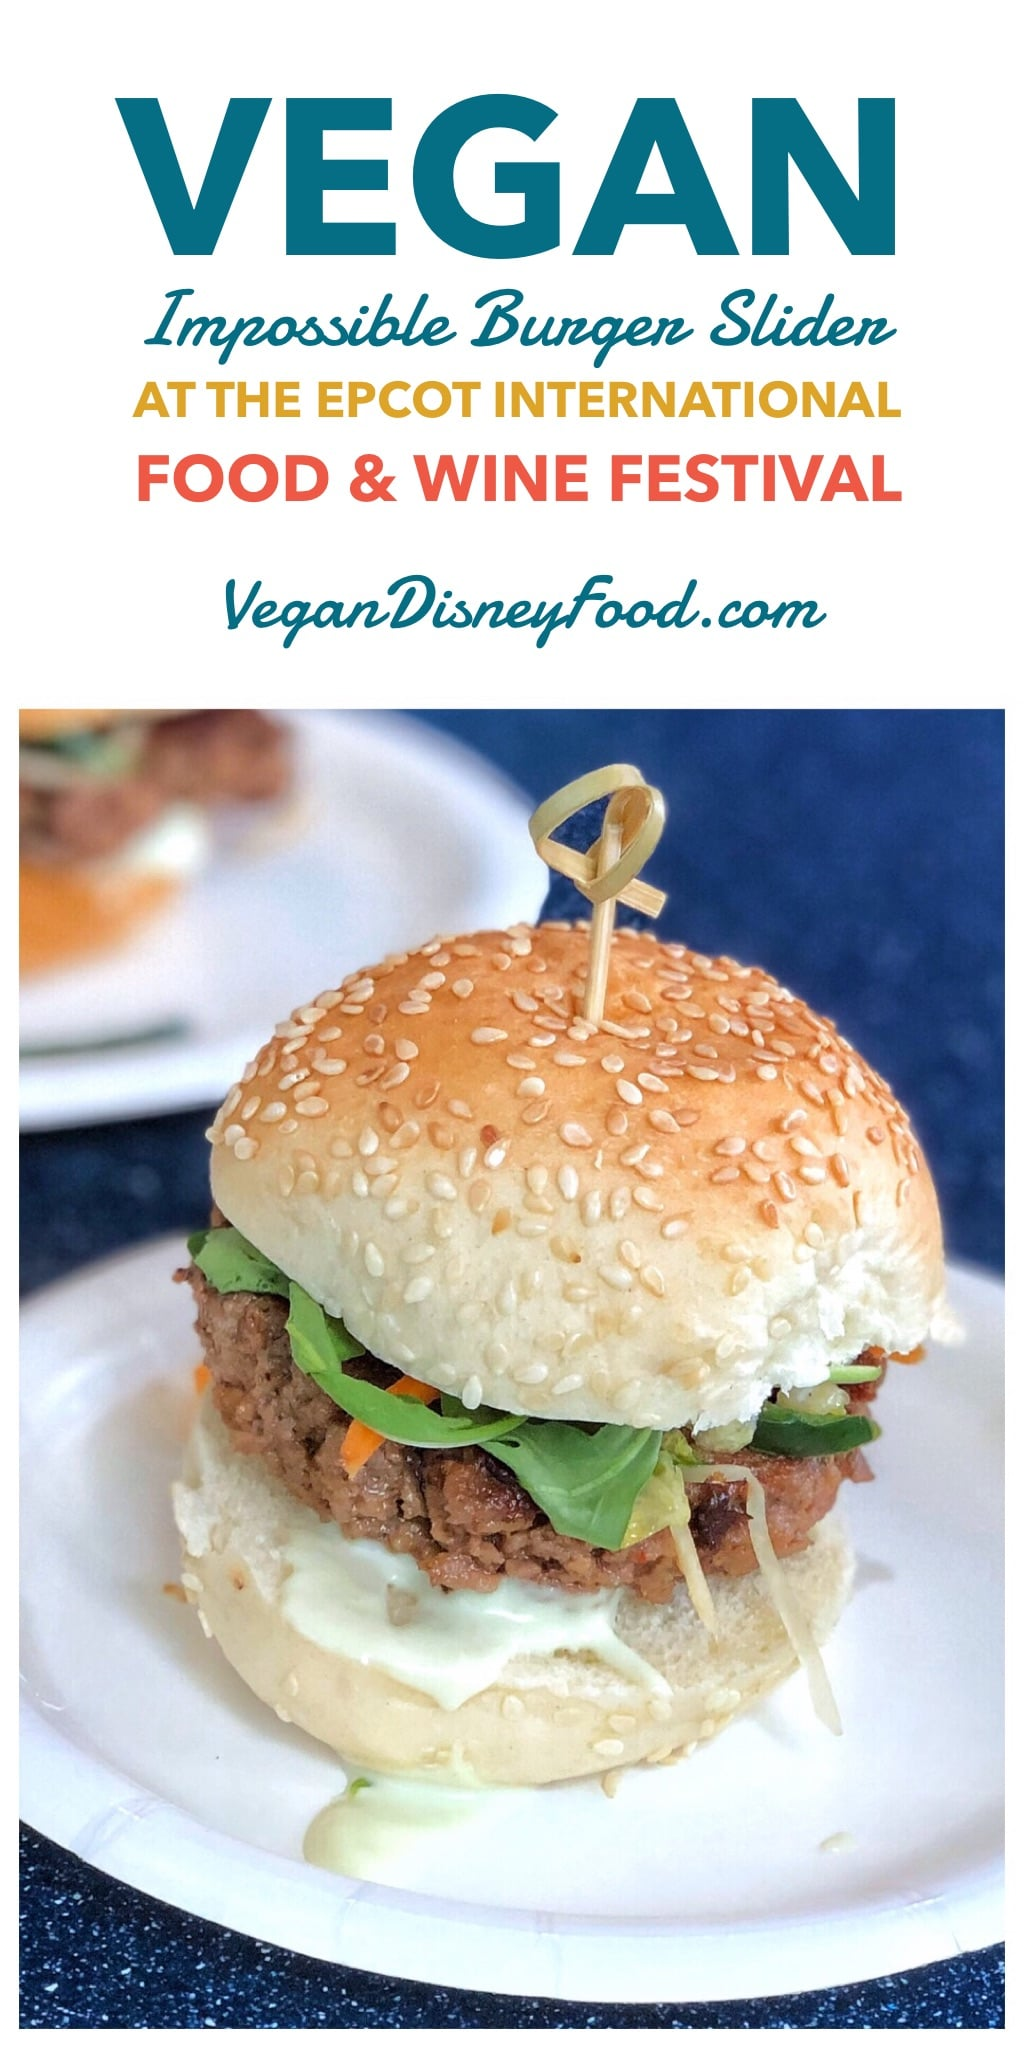 The Impossible Burger Slider at the 2019 Epcot International Food and Wine Festival at Walt Disney World